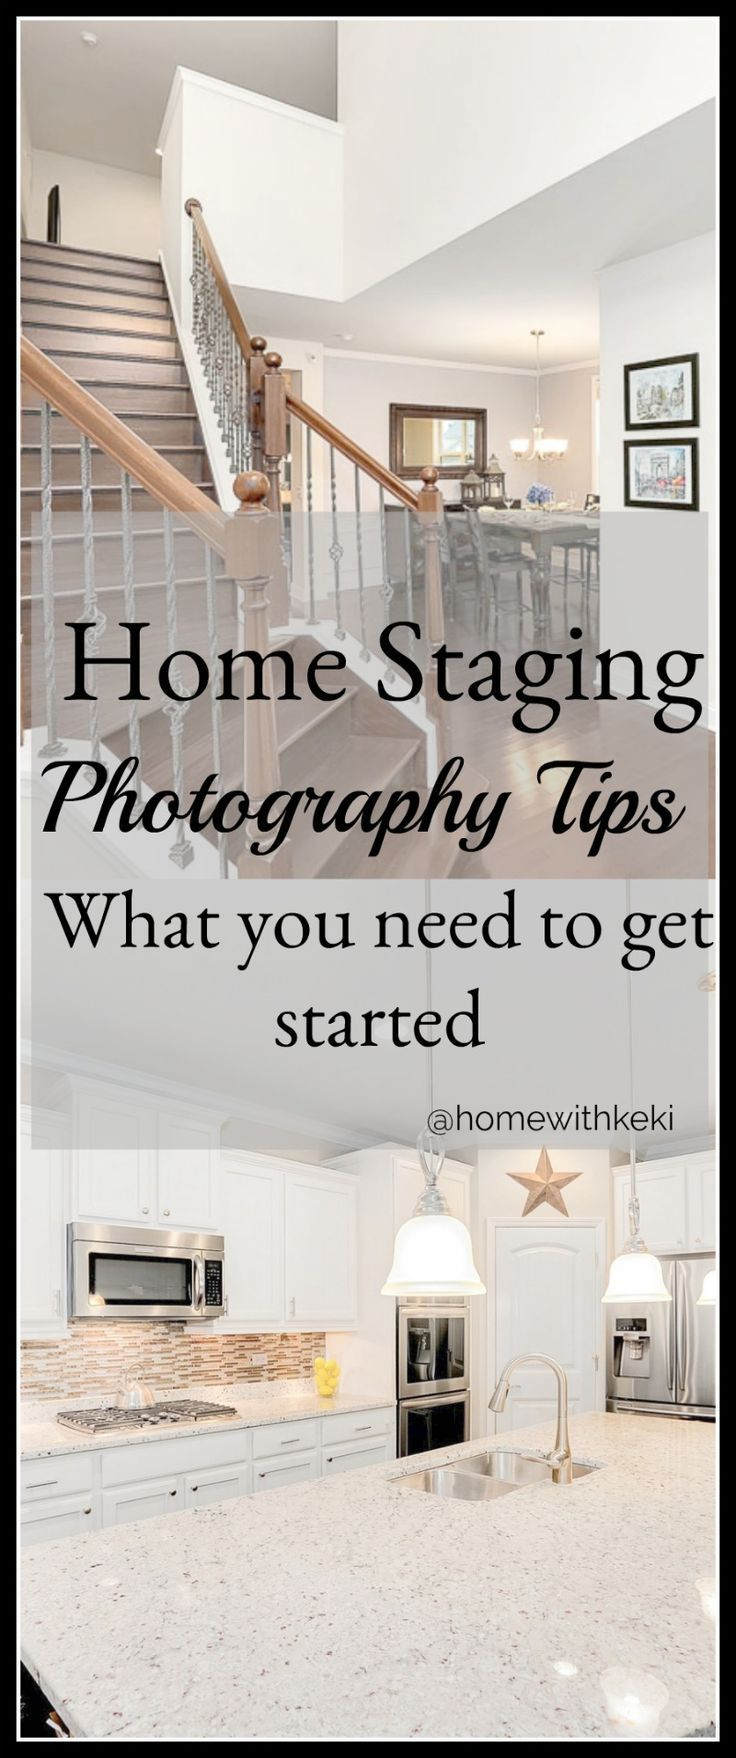 Home Staging Photography Tips For Home Stagers Home Staging Home Staging Tips Home Selling Tips